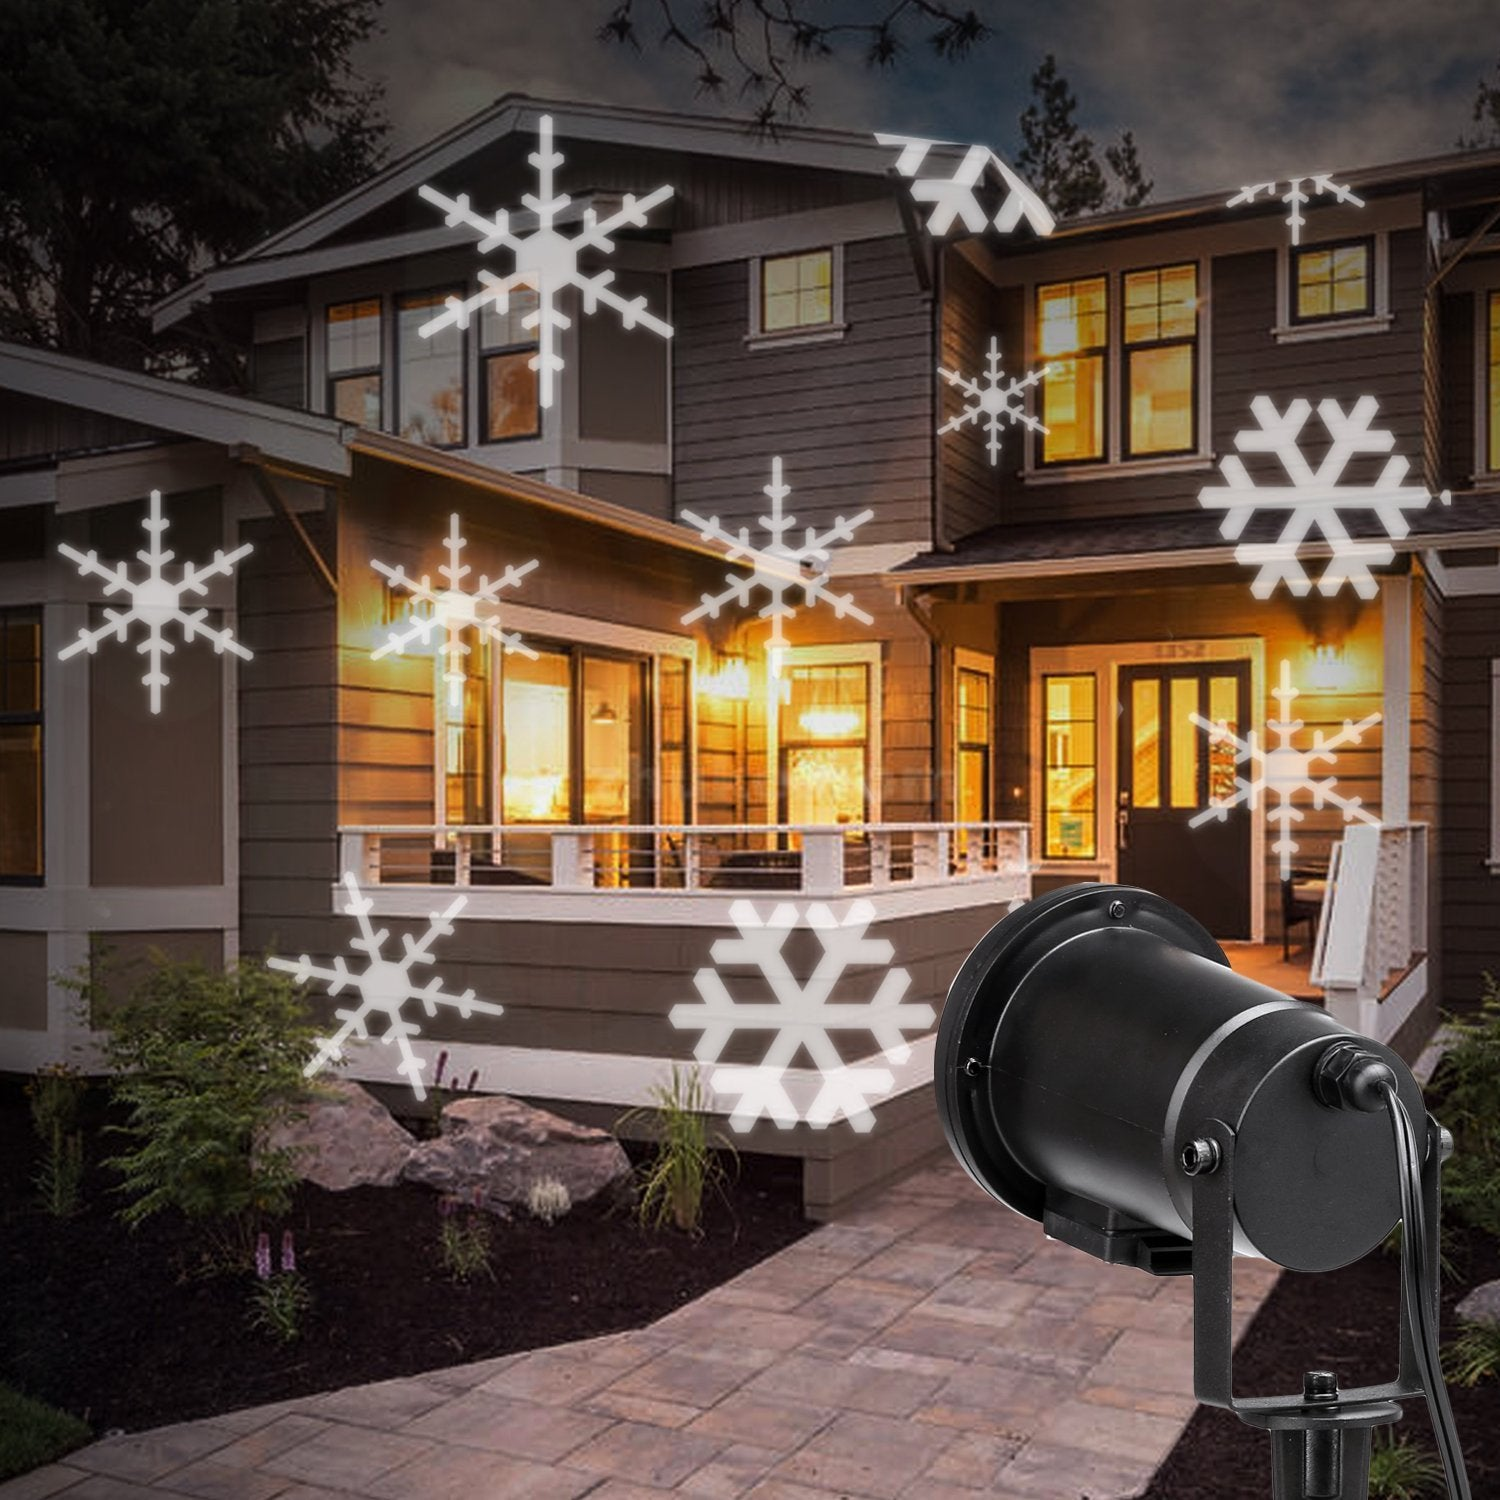 Christmas Projector Lights.Christmas Projector Lights Led Moving White Snowflakes Spotlight Landscape Projector Decorations Light For Party